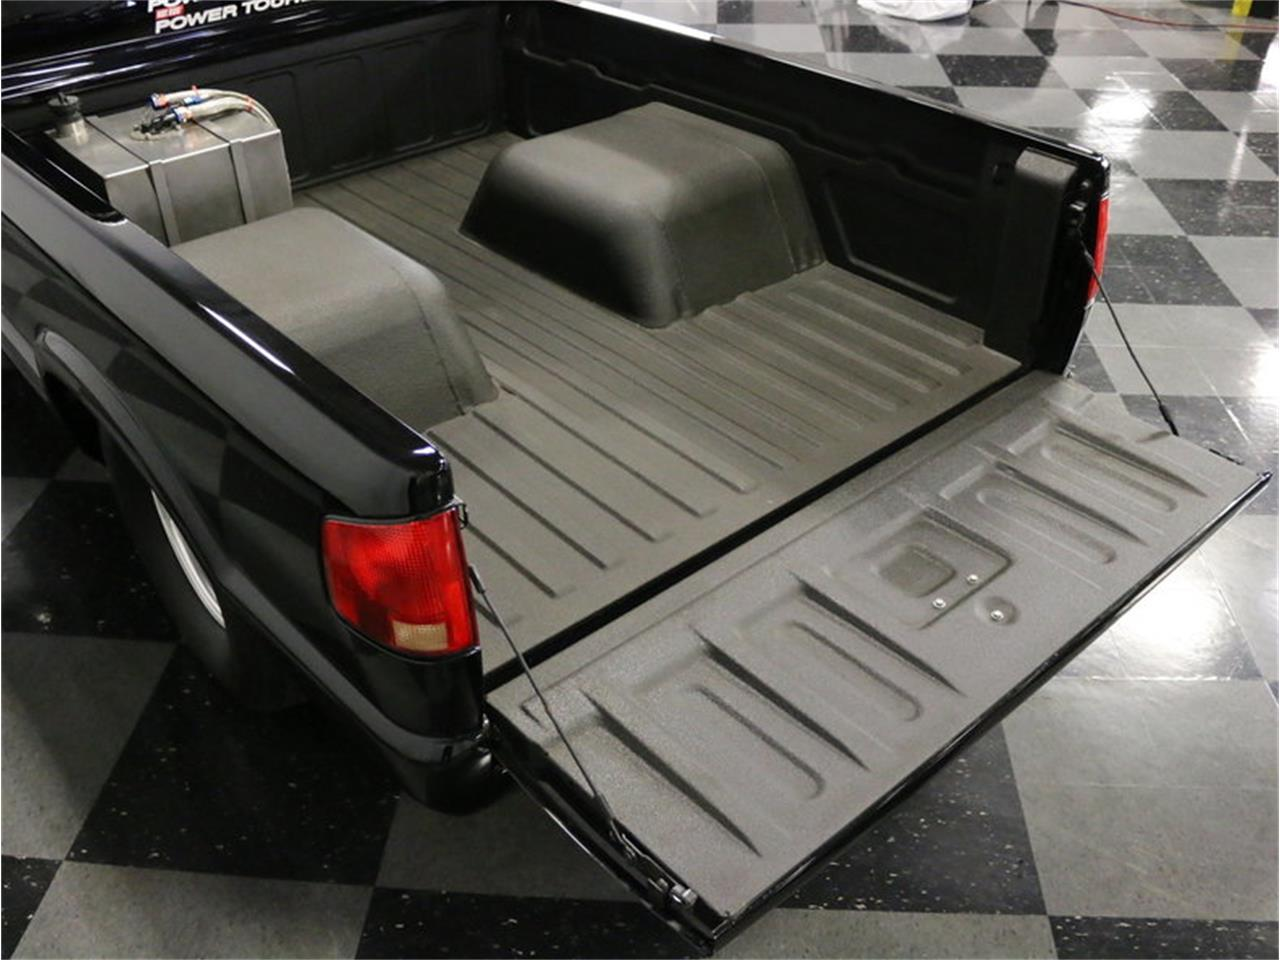 Large Picture of '95 Chevrolet S-10 SS Pro Street located in Ft Worth Texas - $17,995.00 - MOBZ